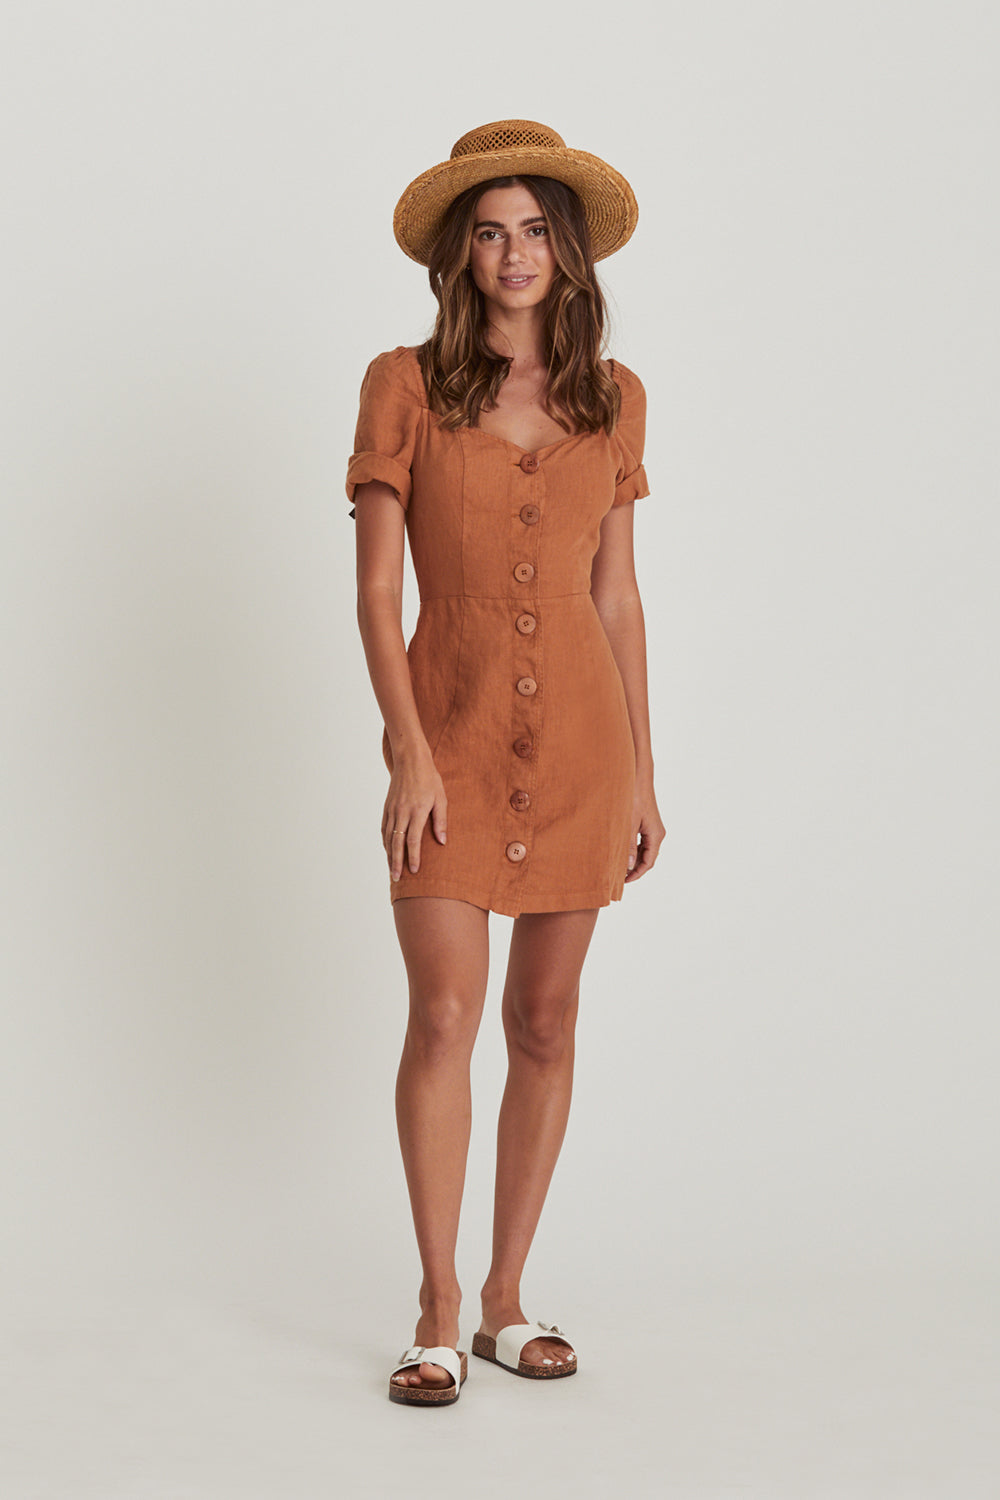 Chloe Mini Dress in Bronze